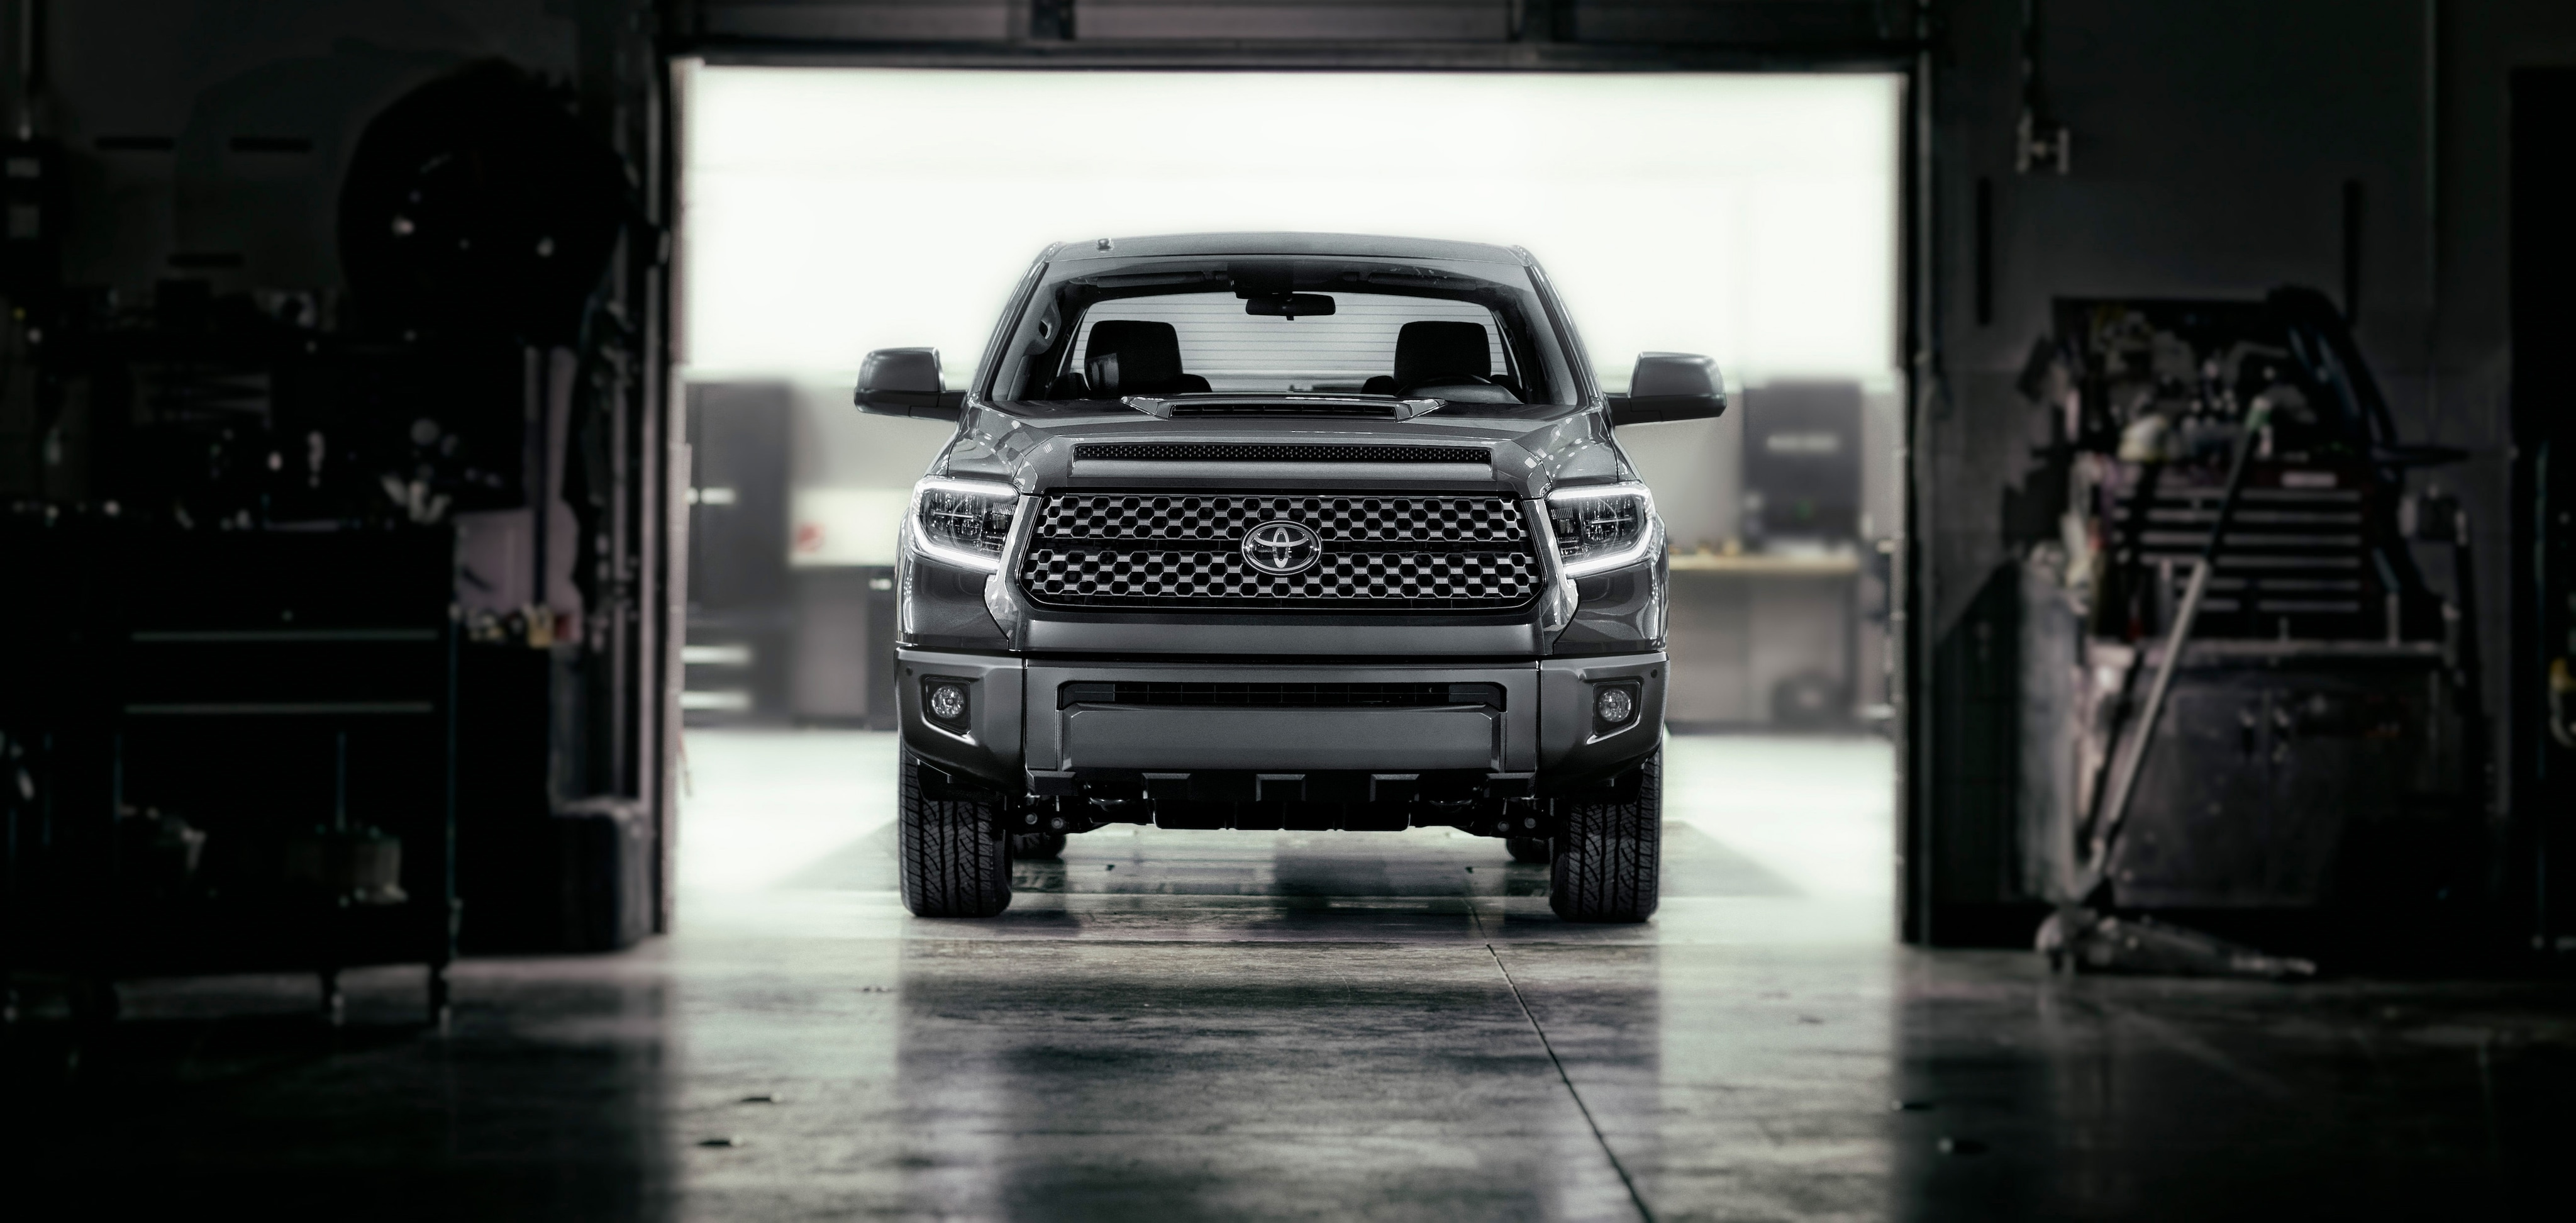 2018 Toyota Tundra driving out of garage